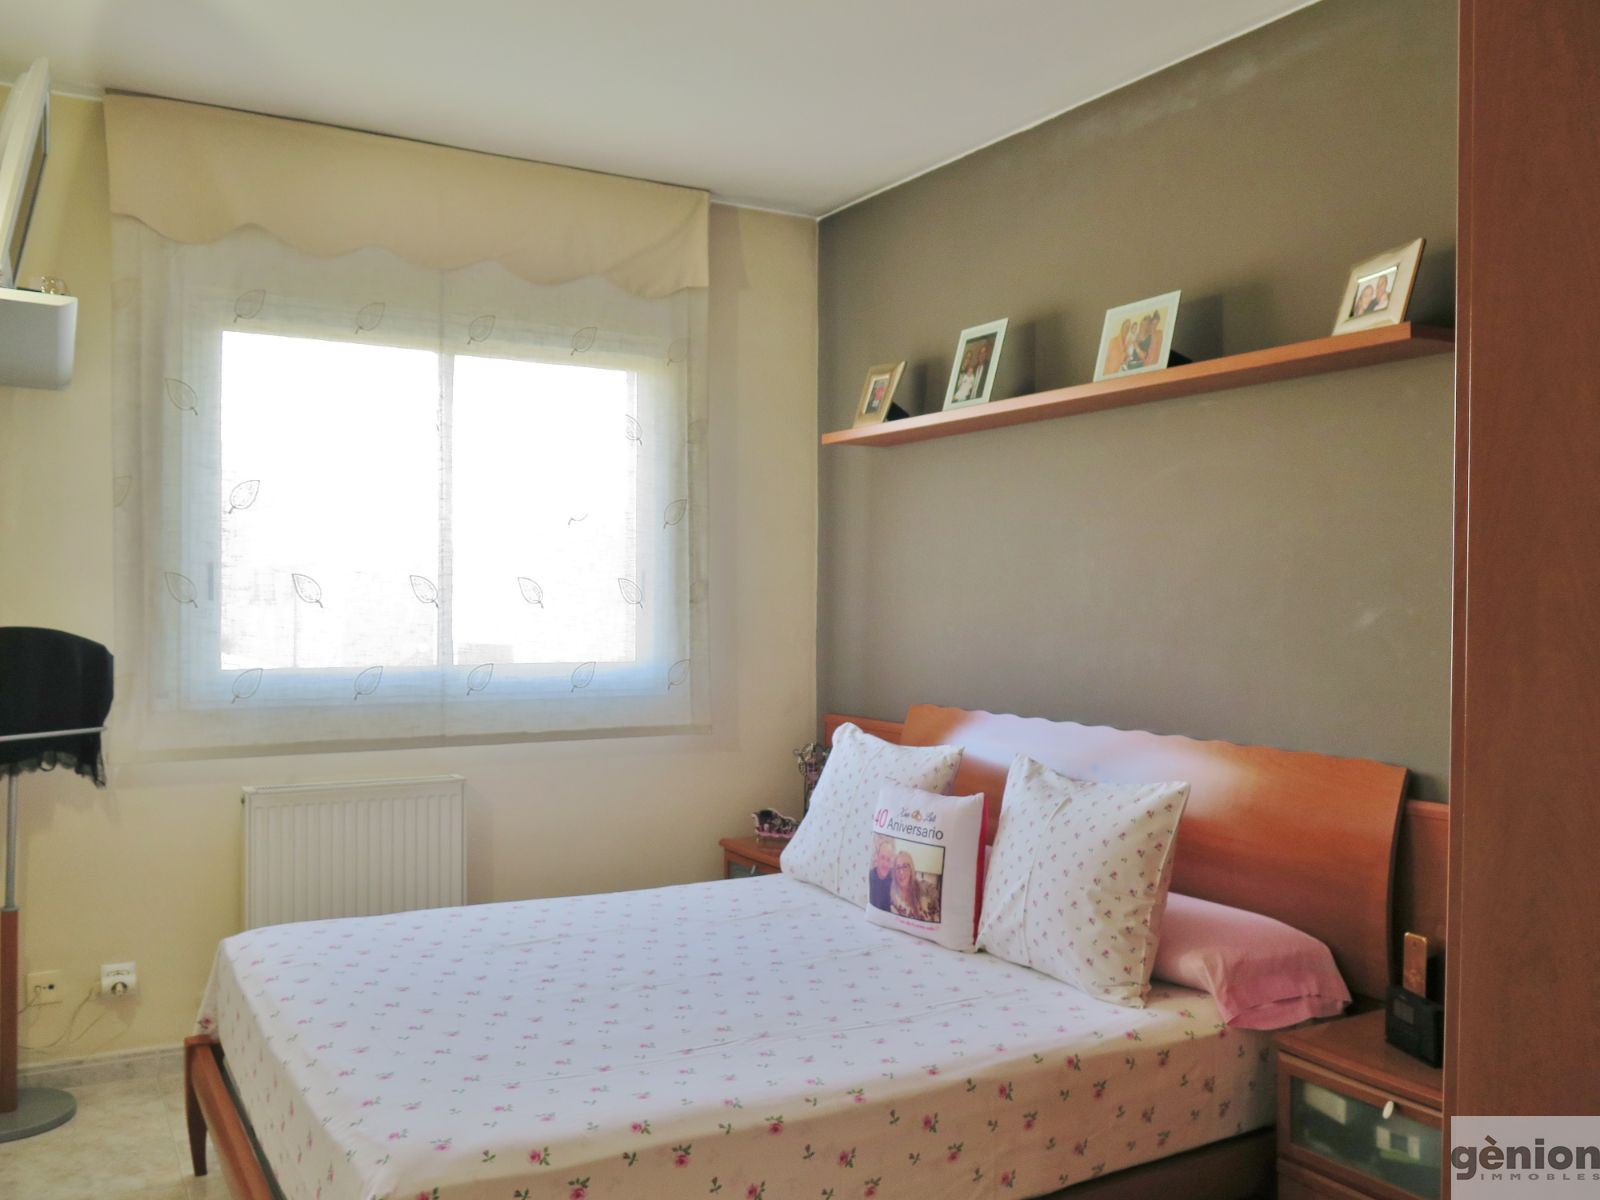 FOUR-BEDROOM HOUSE IN TAIALÀ, GIRONA. LARGE TERRACE AND GARAGE FOR 2 CARS